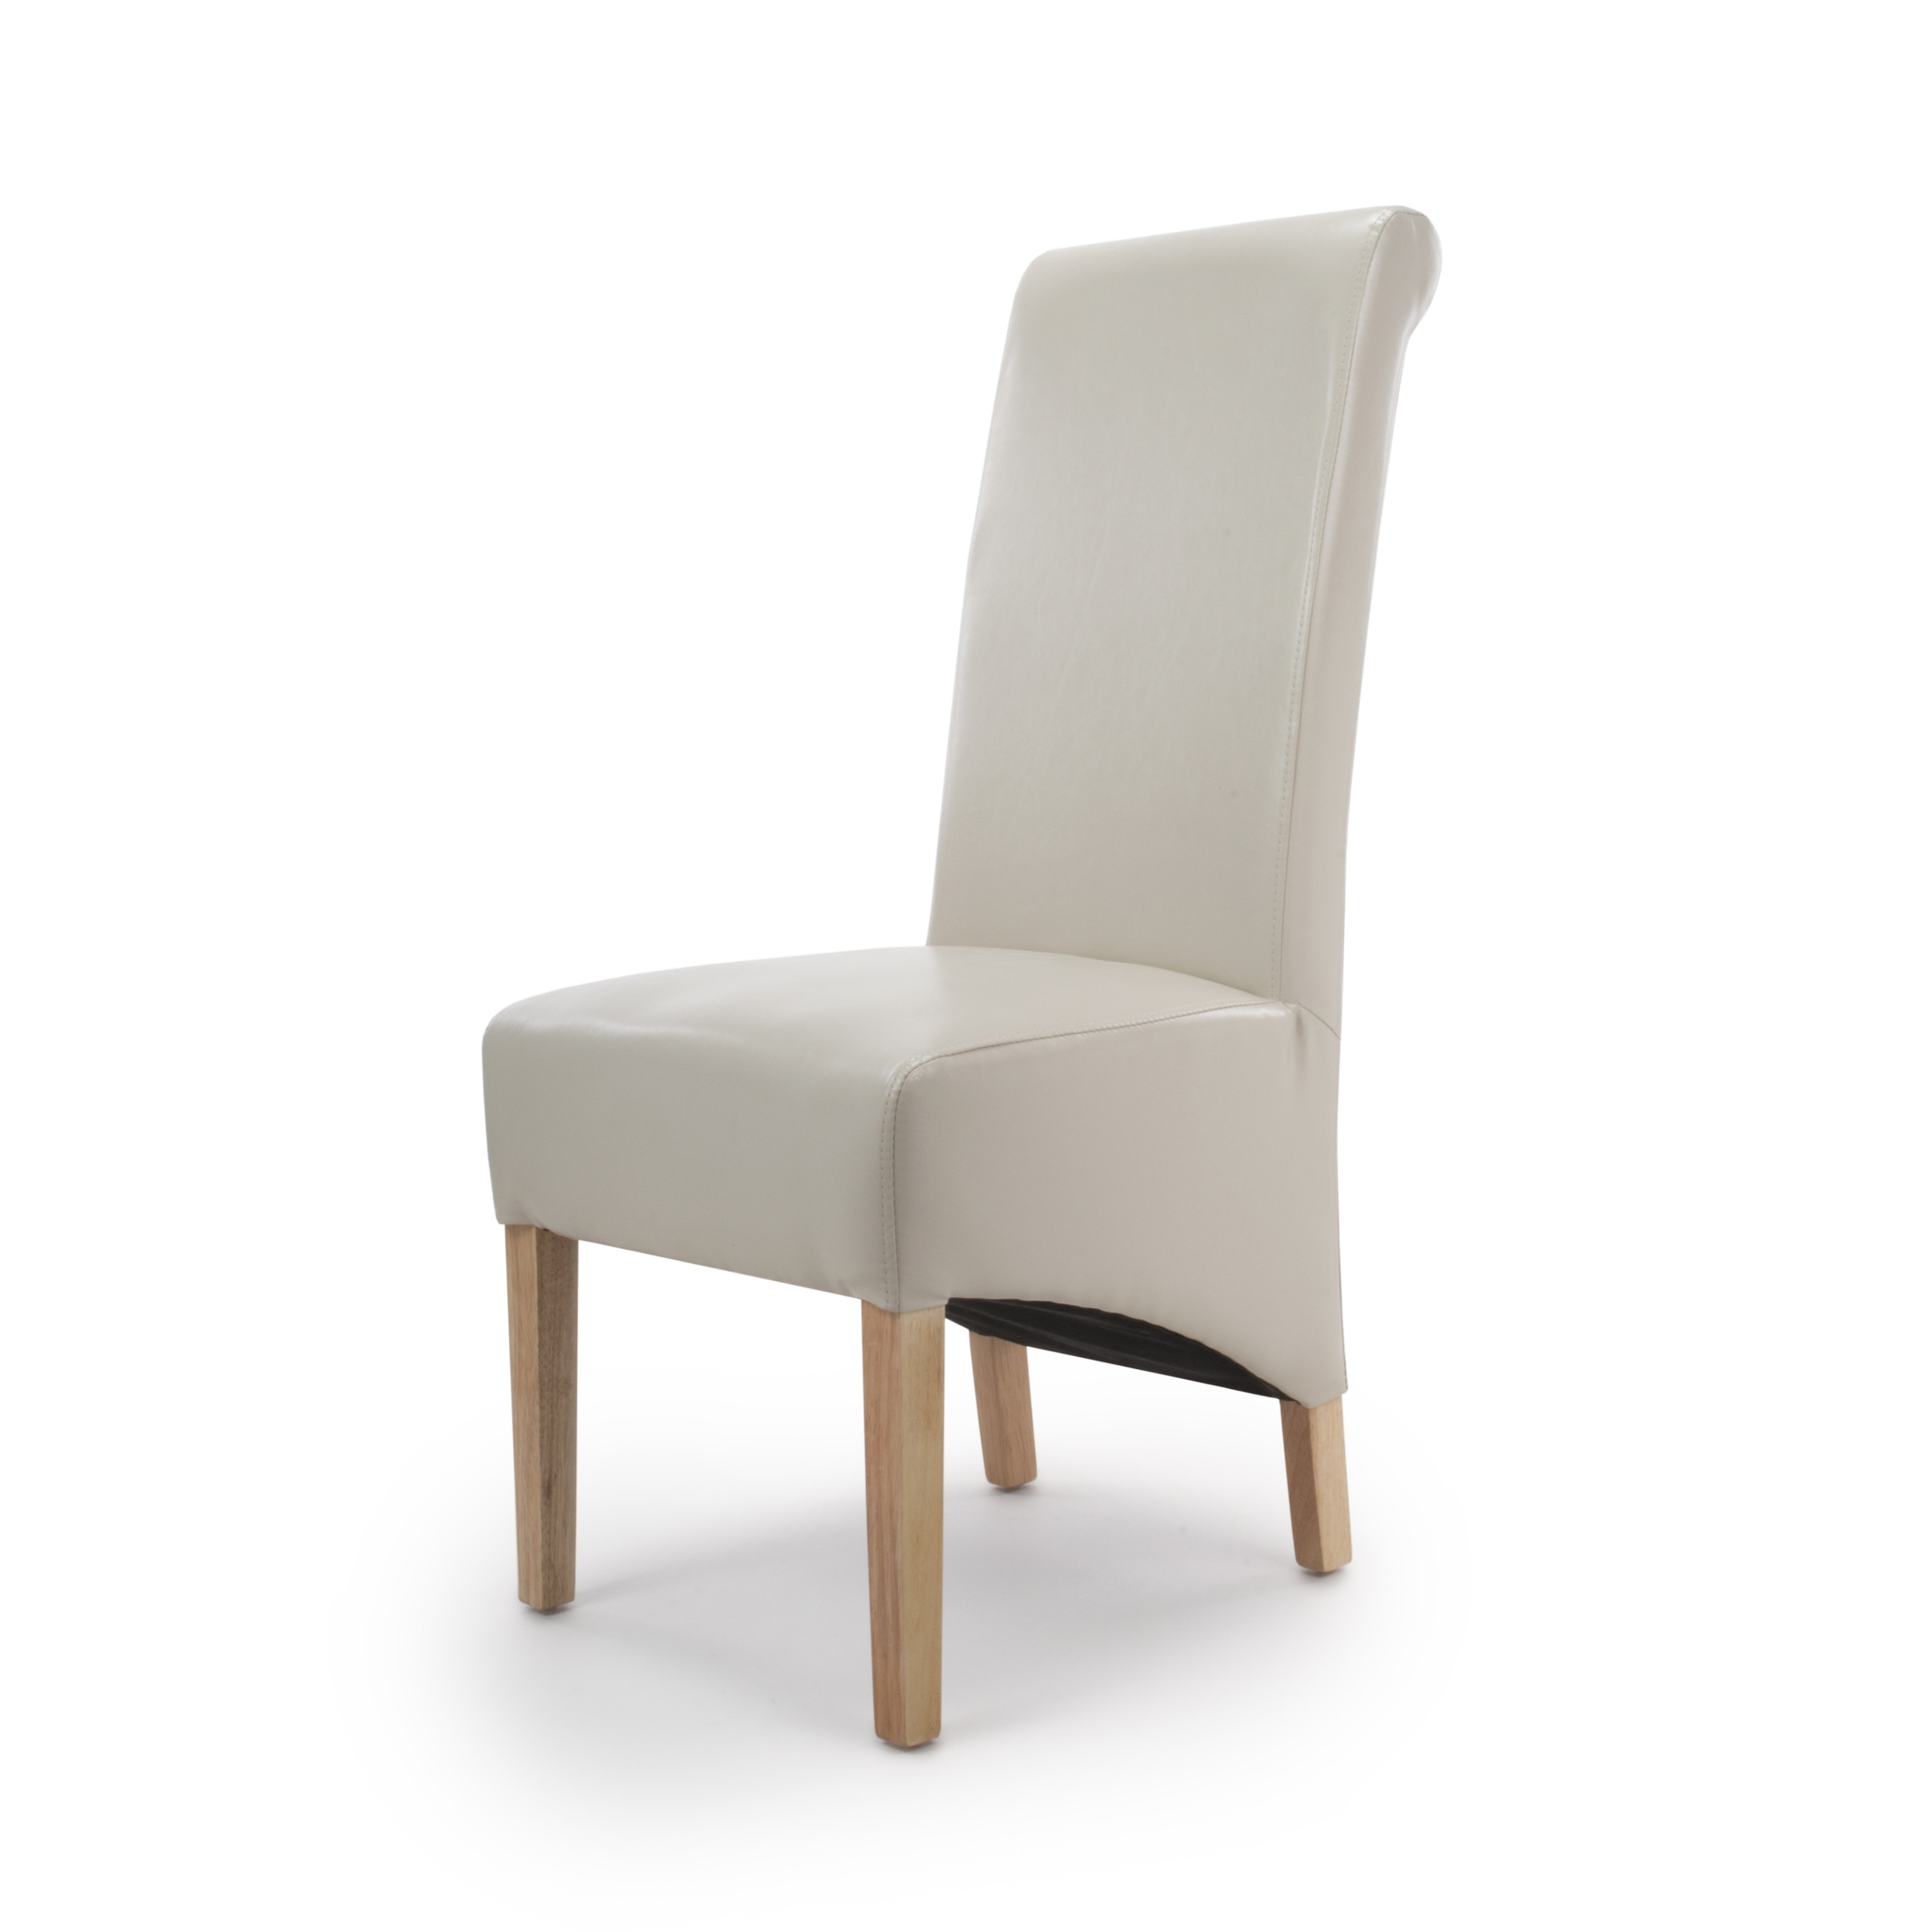 Cream Leather Dining Chairs For Well Known Krista Ivory Cream Leather Dining Chairs (View 4 of 25)